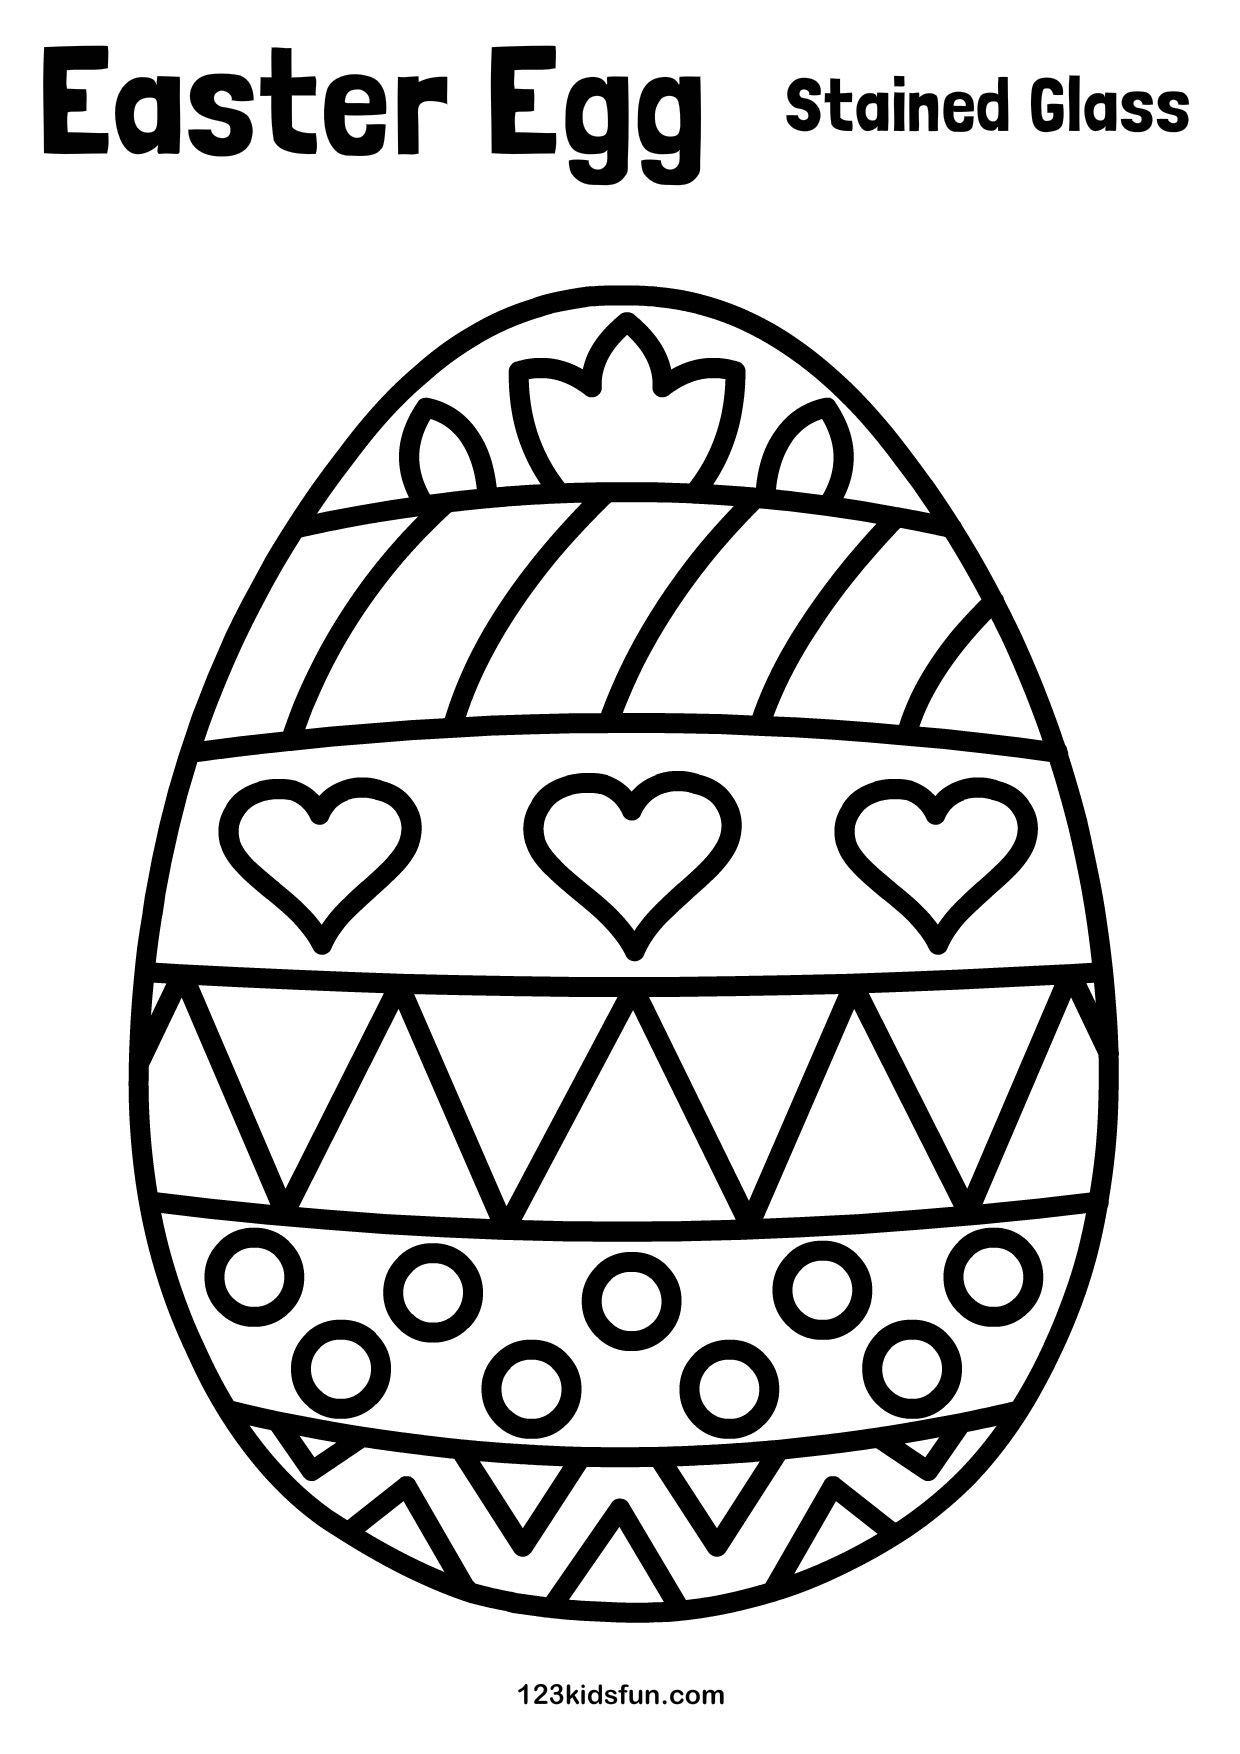 Free Easter Printables For Kids Easter Egg Paper Stained Glass Kids Craft 123kidsfu Easter Coloring Pages Easter Printables Free Easter Egg Coloring Pages [ 1754 x 1240 Pixel ]